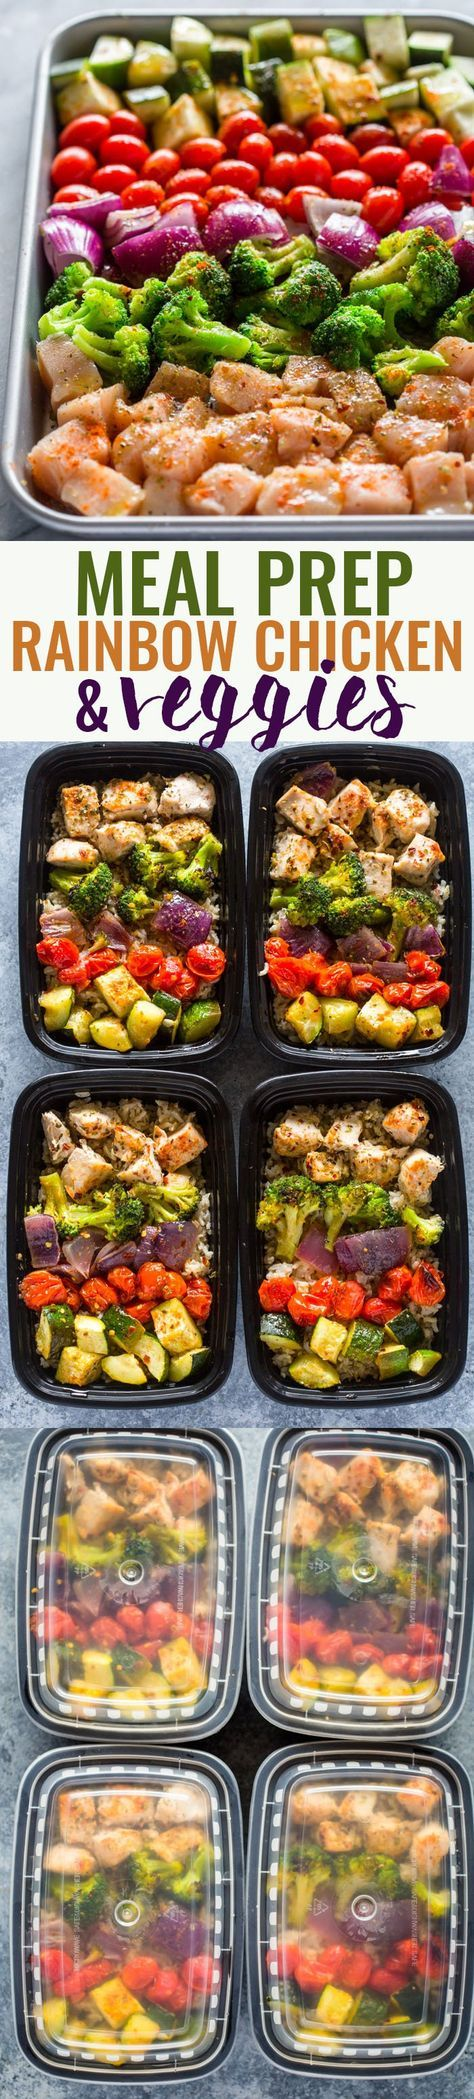 Meal Prep - Healthy Chicken and Veggies (this would be a nice Whole30 lunch)  www.daintyhooligan.com  www.daintyhooligan.com